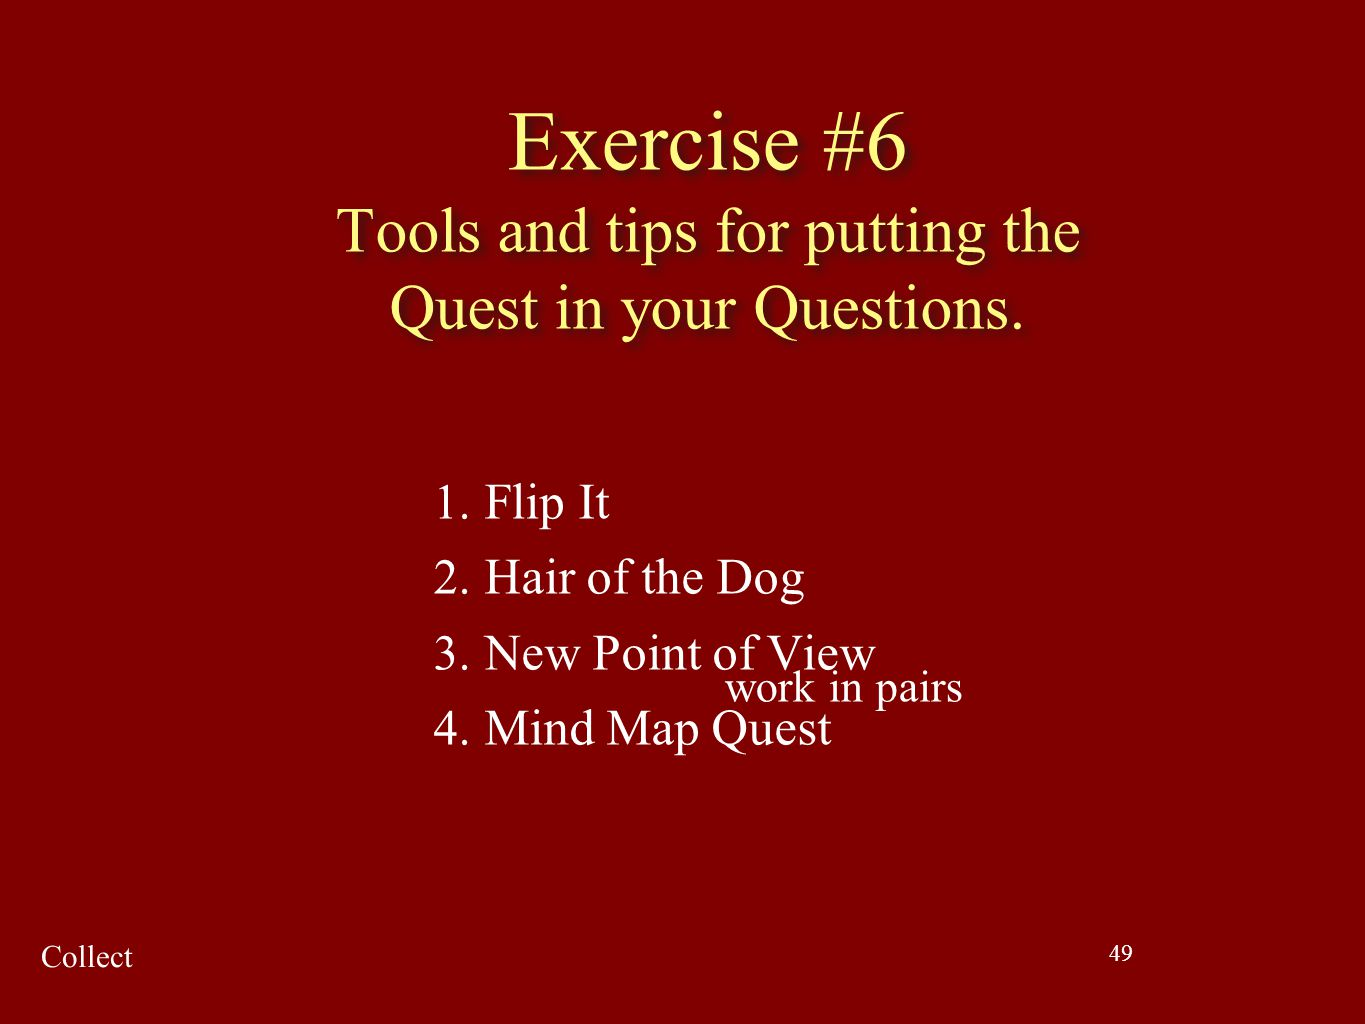 49 Exercise #6 Tools and tips for putting the Quest in your Questions. 1. Flip It 2. Hair of the Dog 3. New Point of View 4. Mind Map Quest work in pa